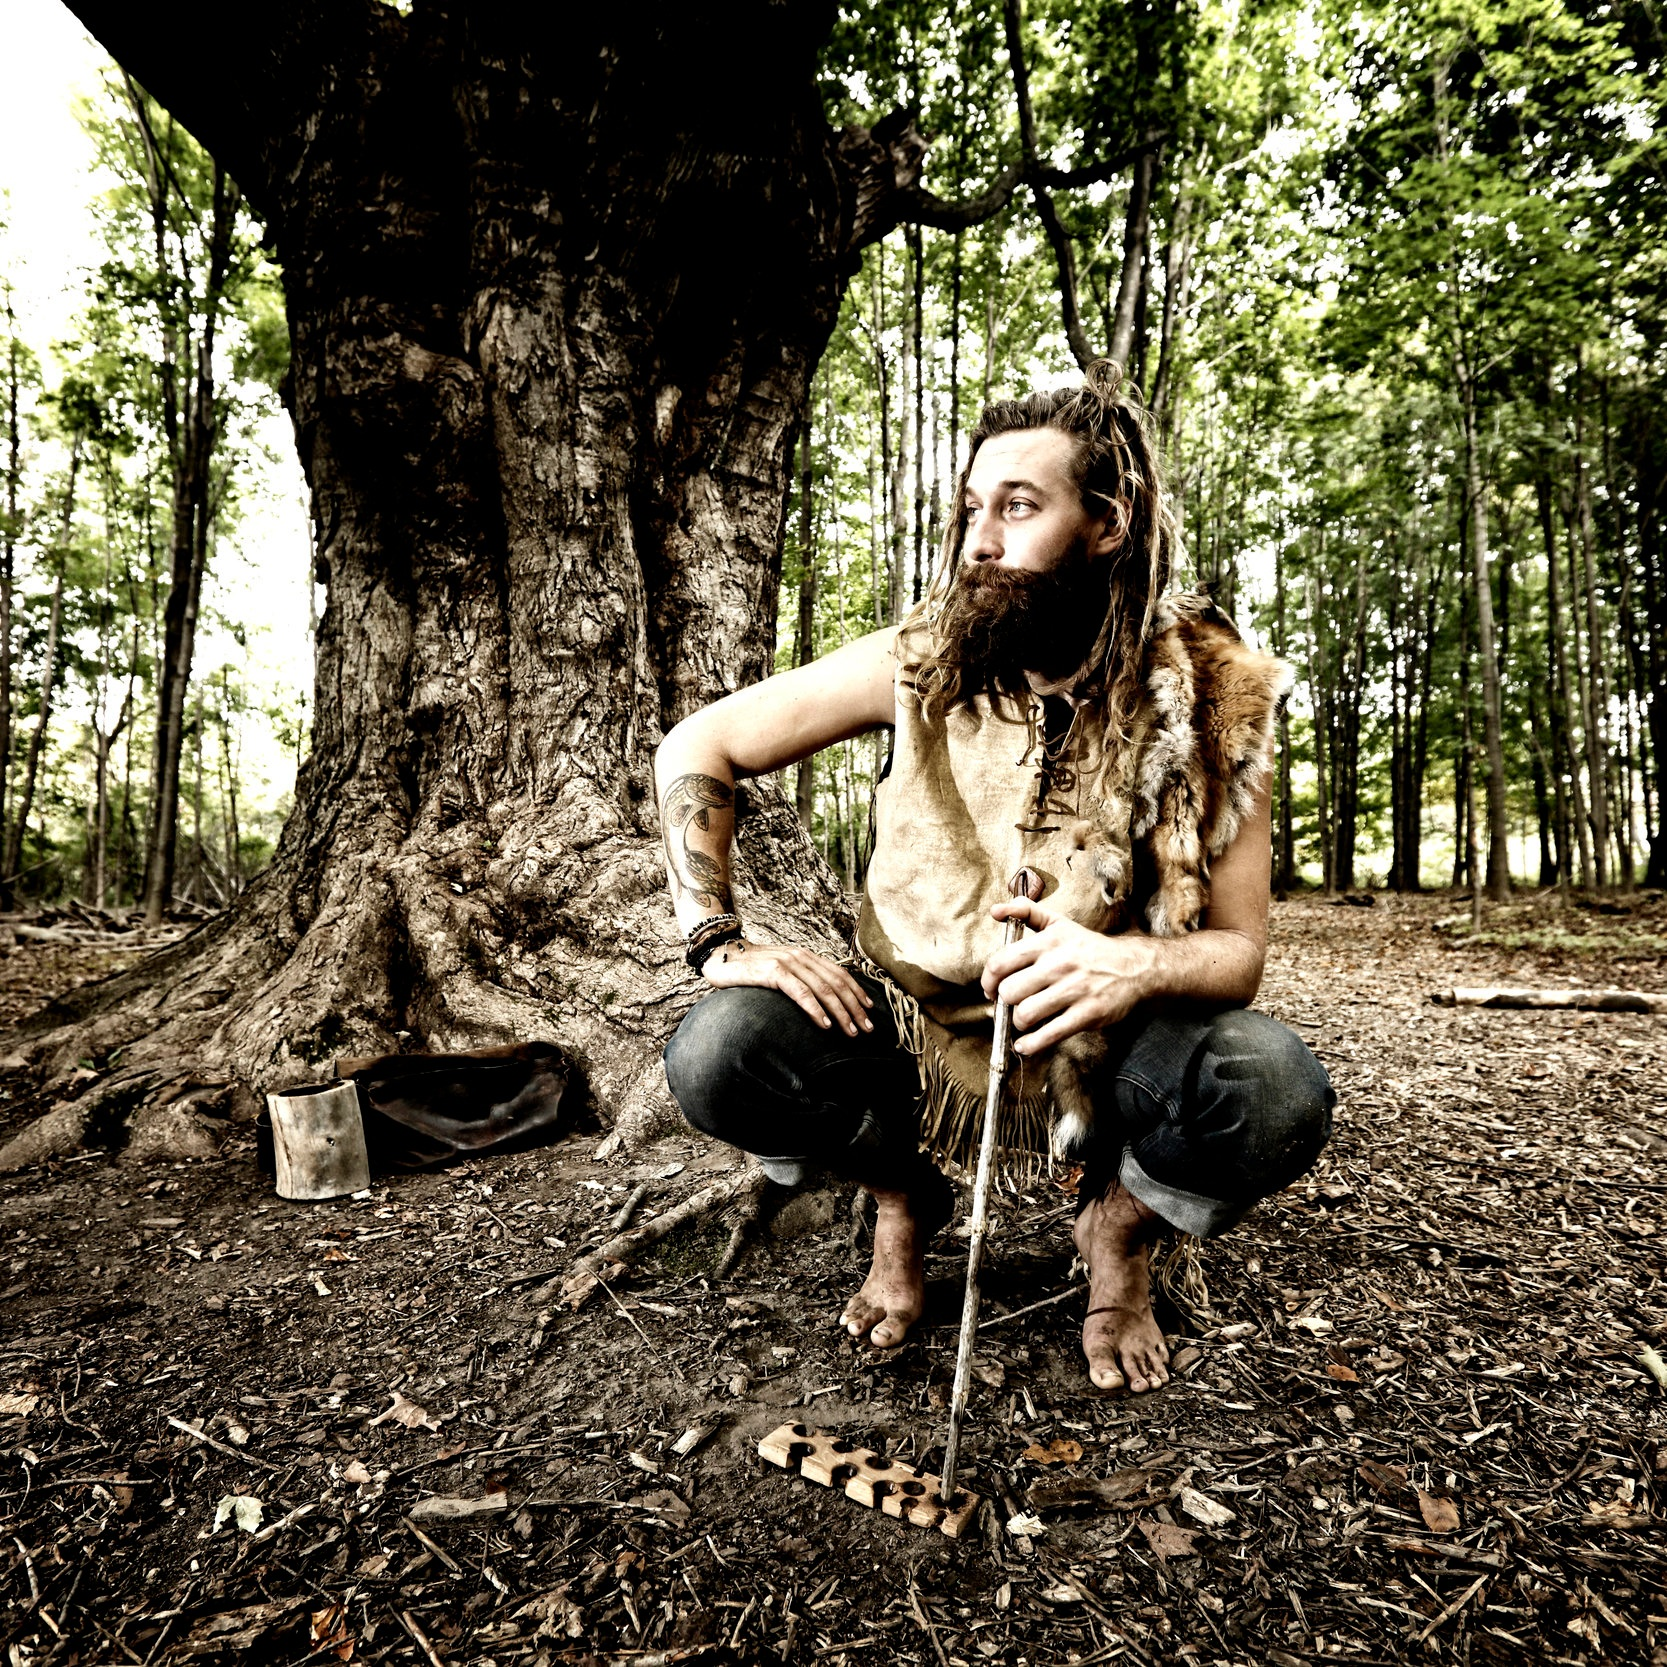 """Luke McLaughlin - Luke is a naturalist, rewilder, and founder of Holistic Survival School. Luke has committed his life to mastering and teaching ancestral and indigenous living skills in order to help people find their balance and connection to the Natural World. Furthermore, Luke has witnessed first hand how nature connection helps bring about growth, health, and vitality to everyone's life.Luke combines humor, knowledge, and patience to create an easy-going, yet informative experience. He is dedicated to meeting people where they are at, with love and compassion in order to help foster a new (actually old) way of being human.Additionally, Luke has been trained in Holistic Counseling and loves helping people foster greater awareness of their patterns.Luke is most known for his epic 21 and 40 day wilderness excursions for the shows """"Naked and Afraid"""" and """"Naked and Afraid XL"""". During his time living off the land, Luke lived the skills and philosophy he teaches."""